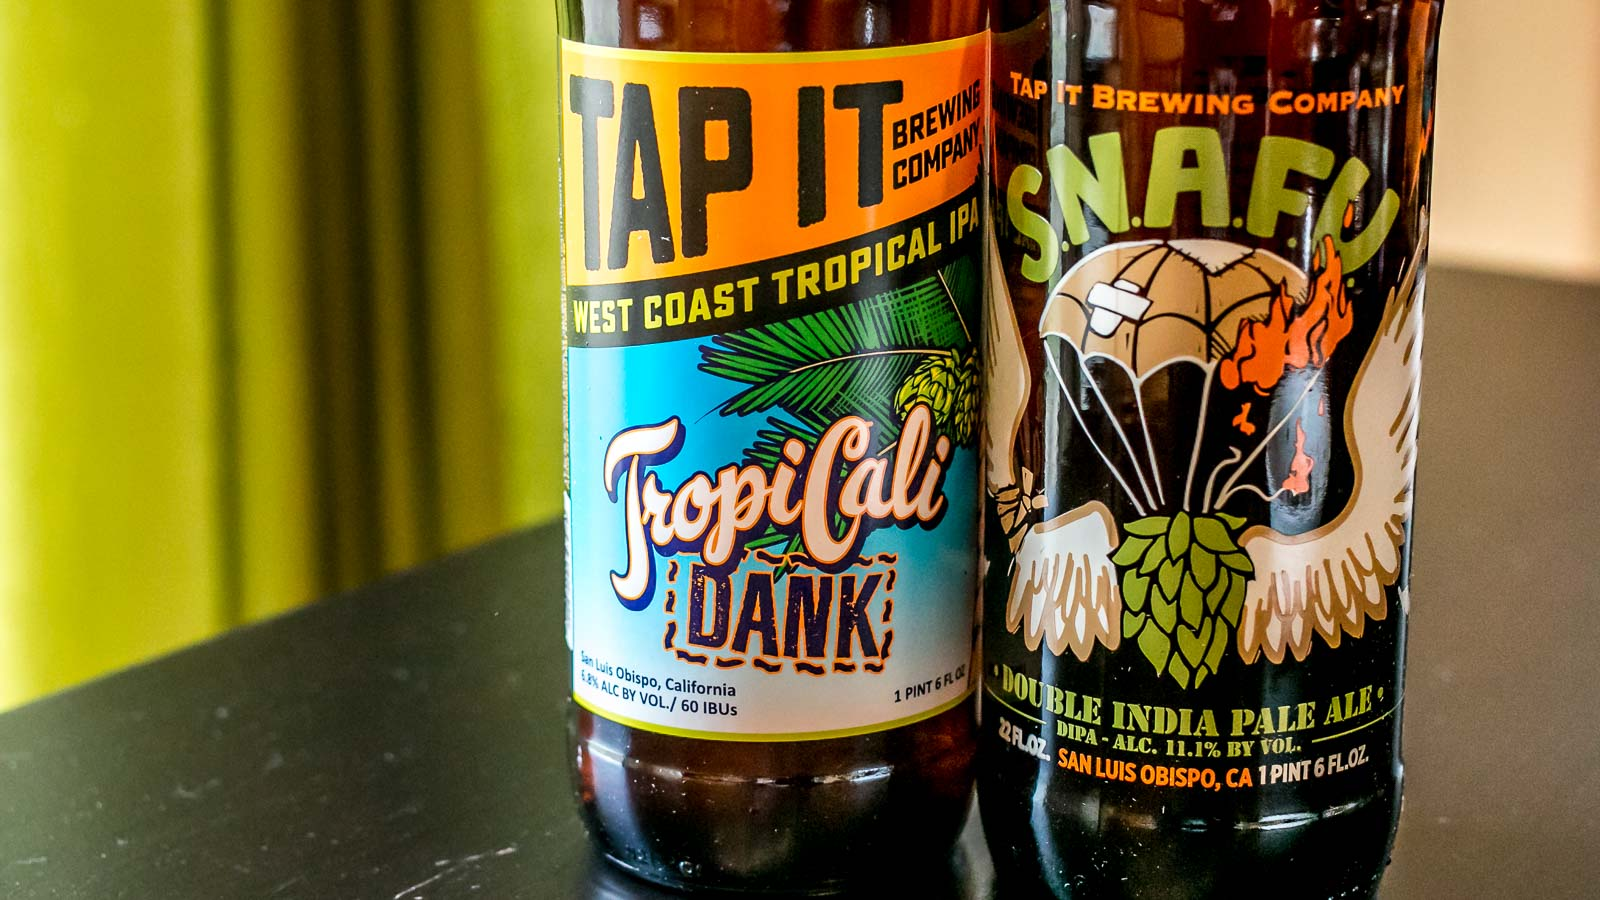 S.N.A.F.U. and TropiCali Dank IPA